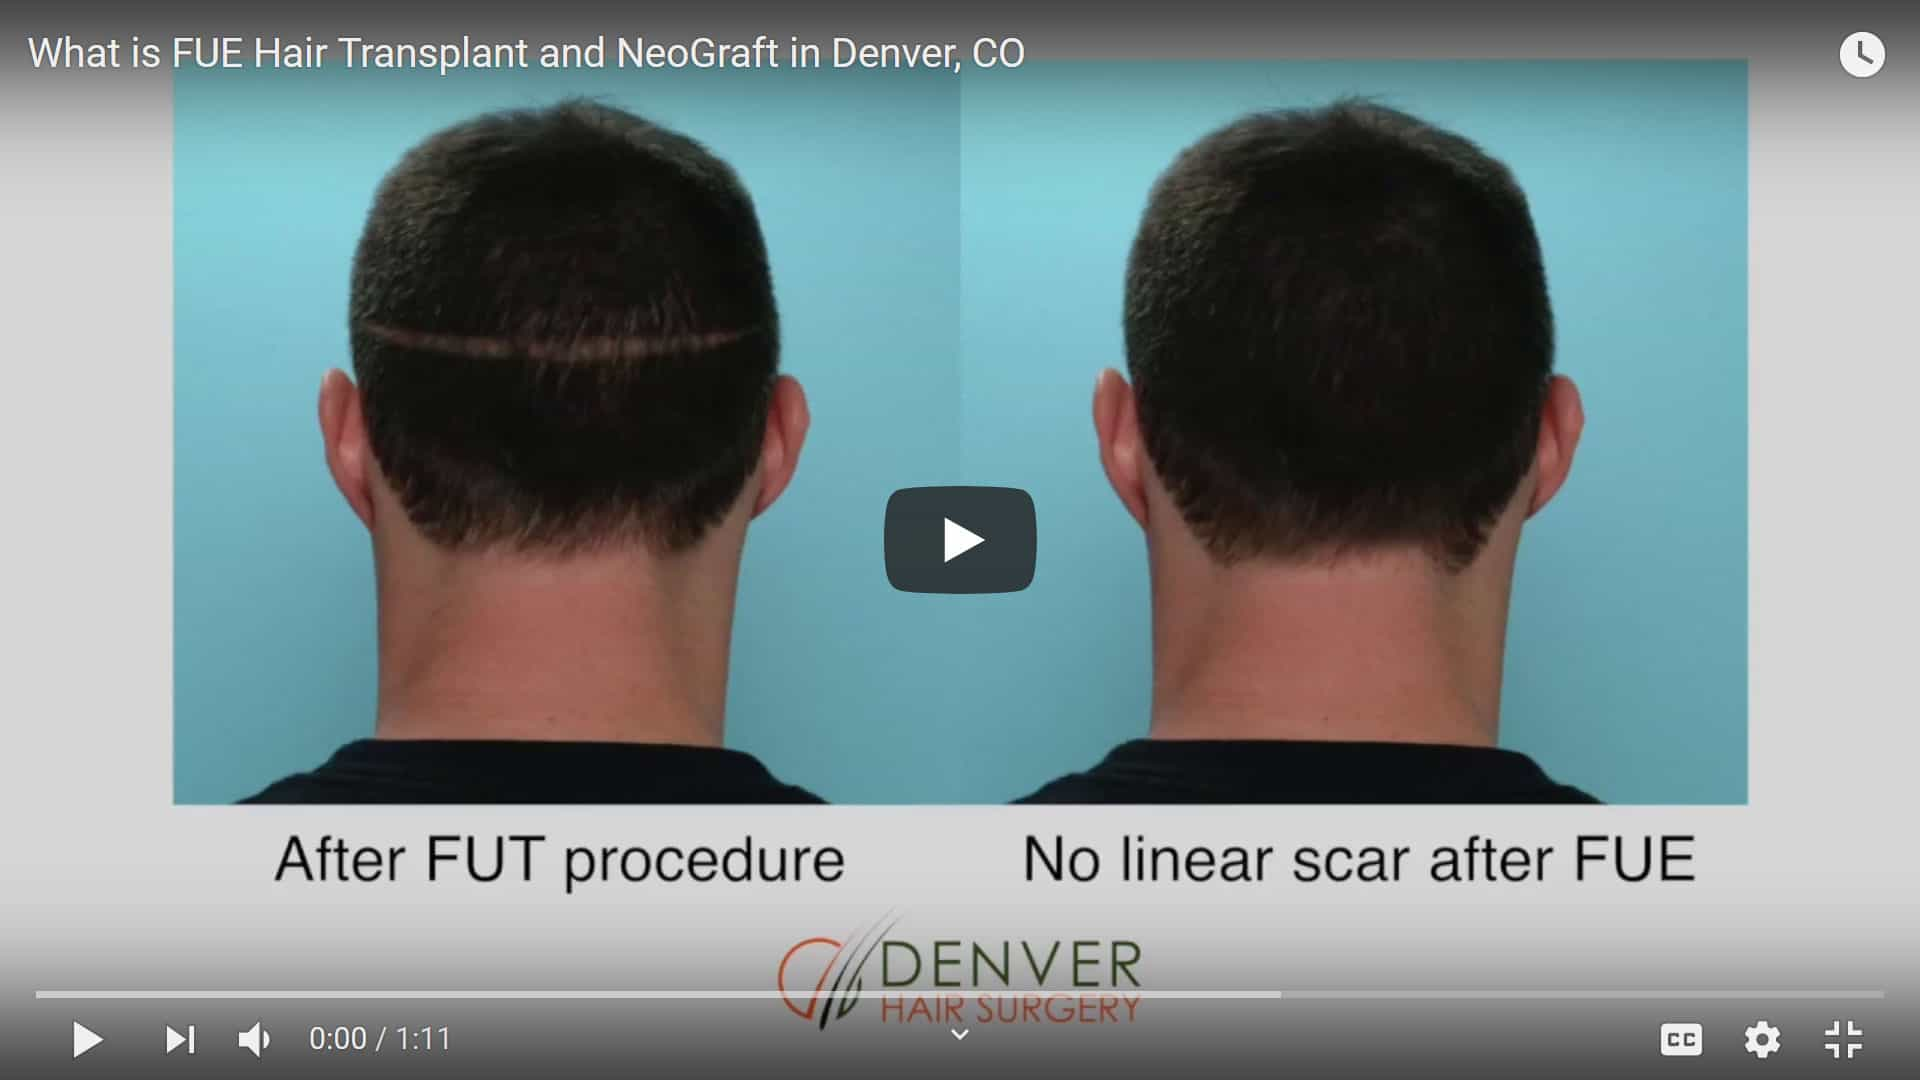 What is FUE Hair Transplant and Neograft in Denver, CO - Click to see video